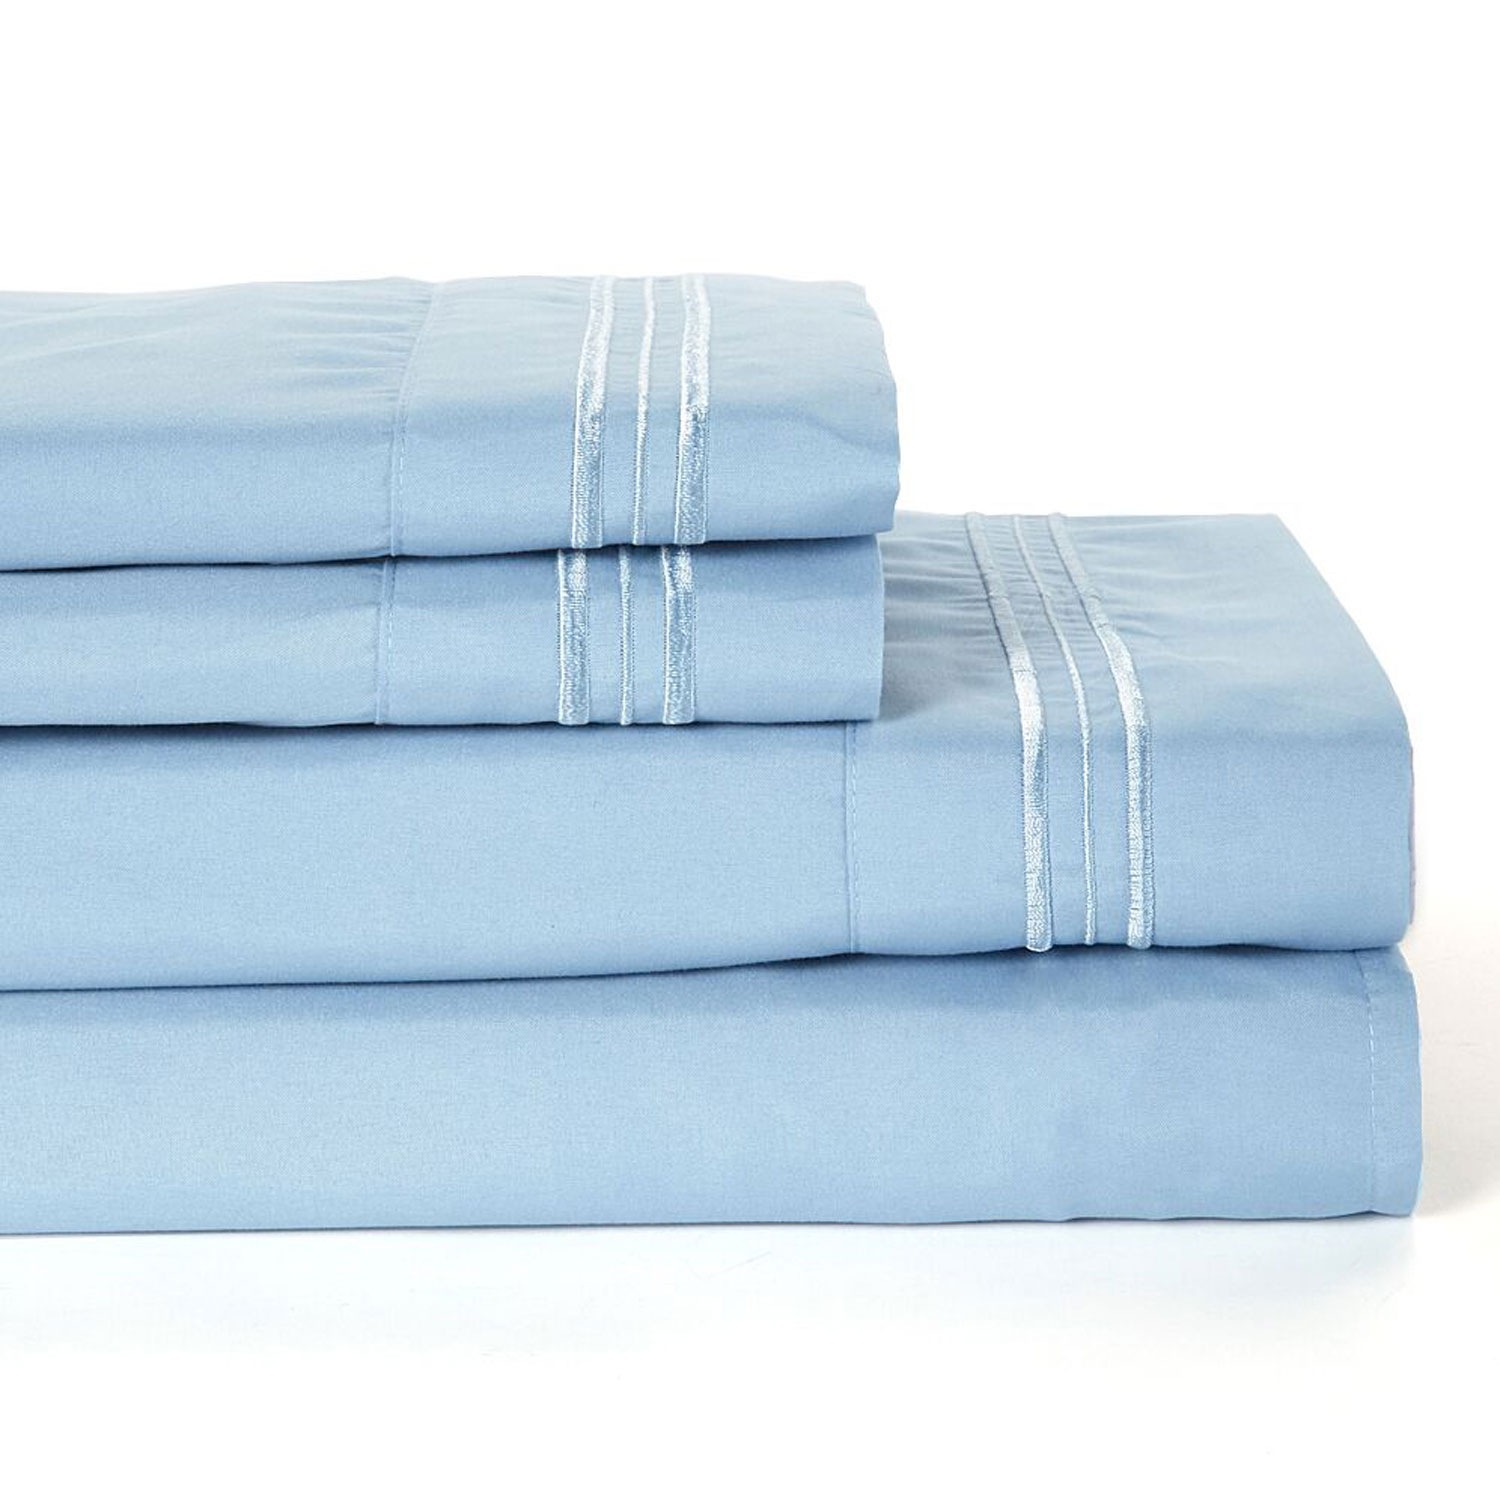 4 Piece: Home Collection Egyptian Deep Pocket Brushed 1800 Series Bed Sheet Set